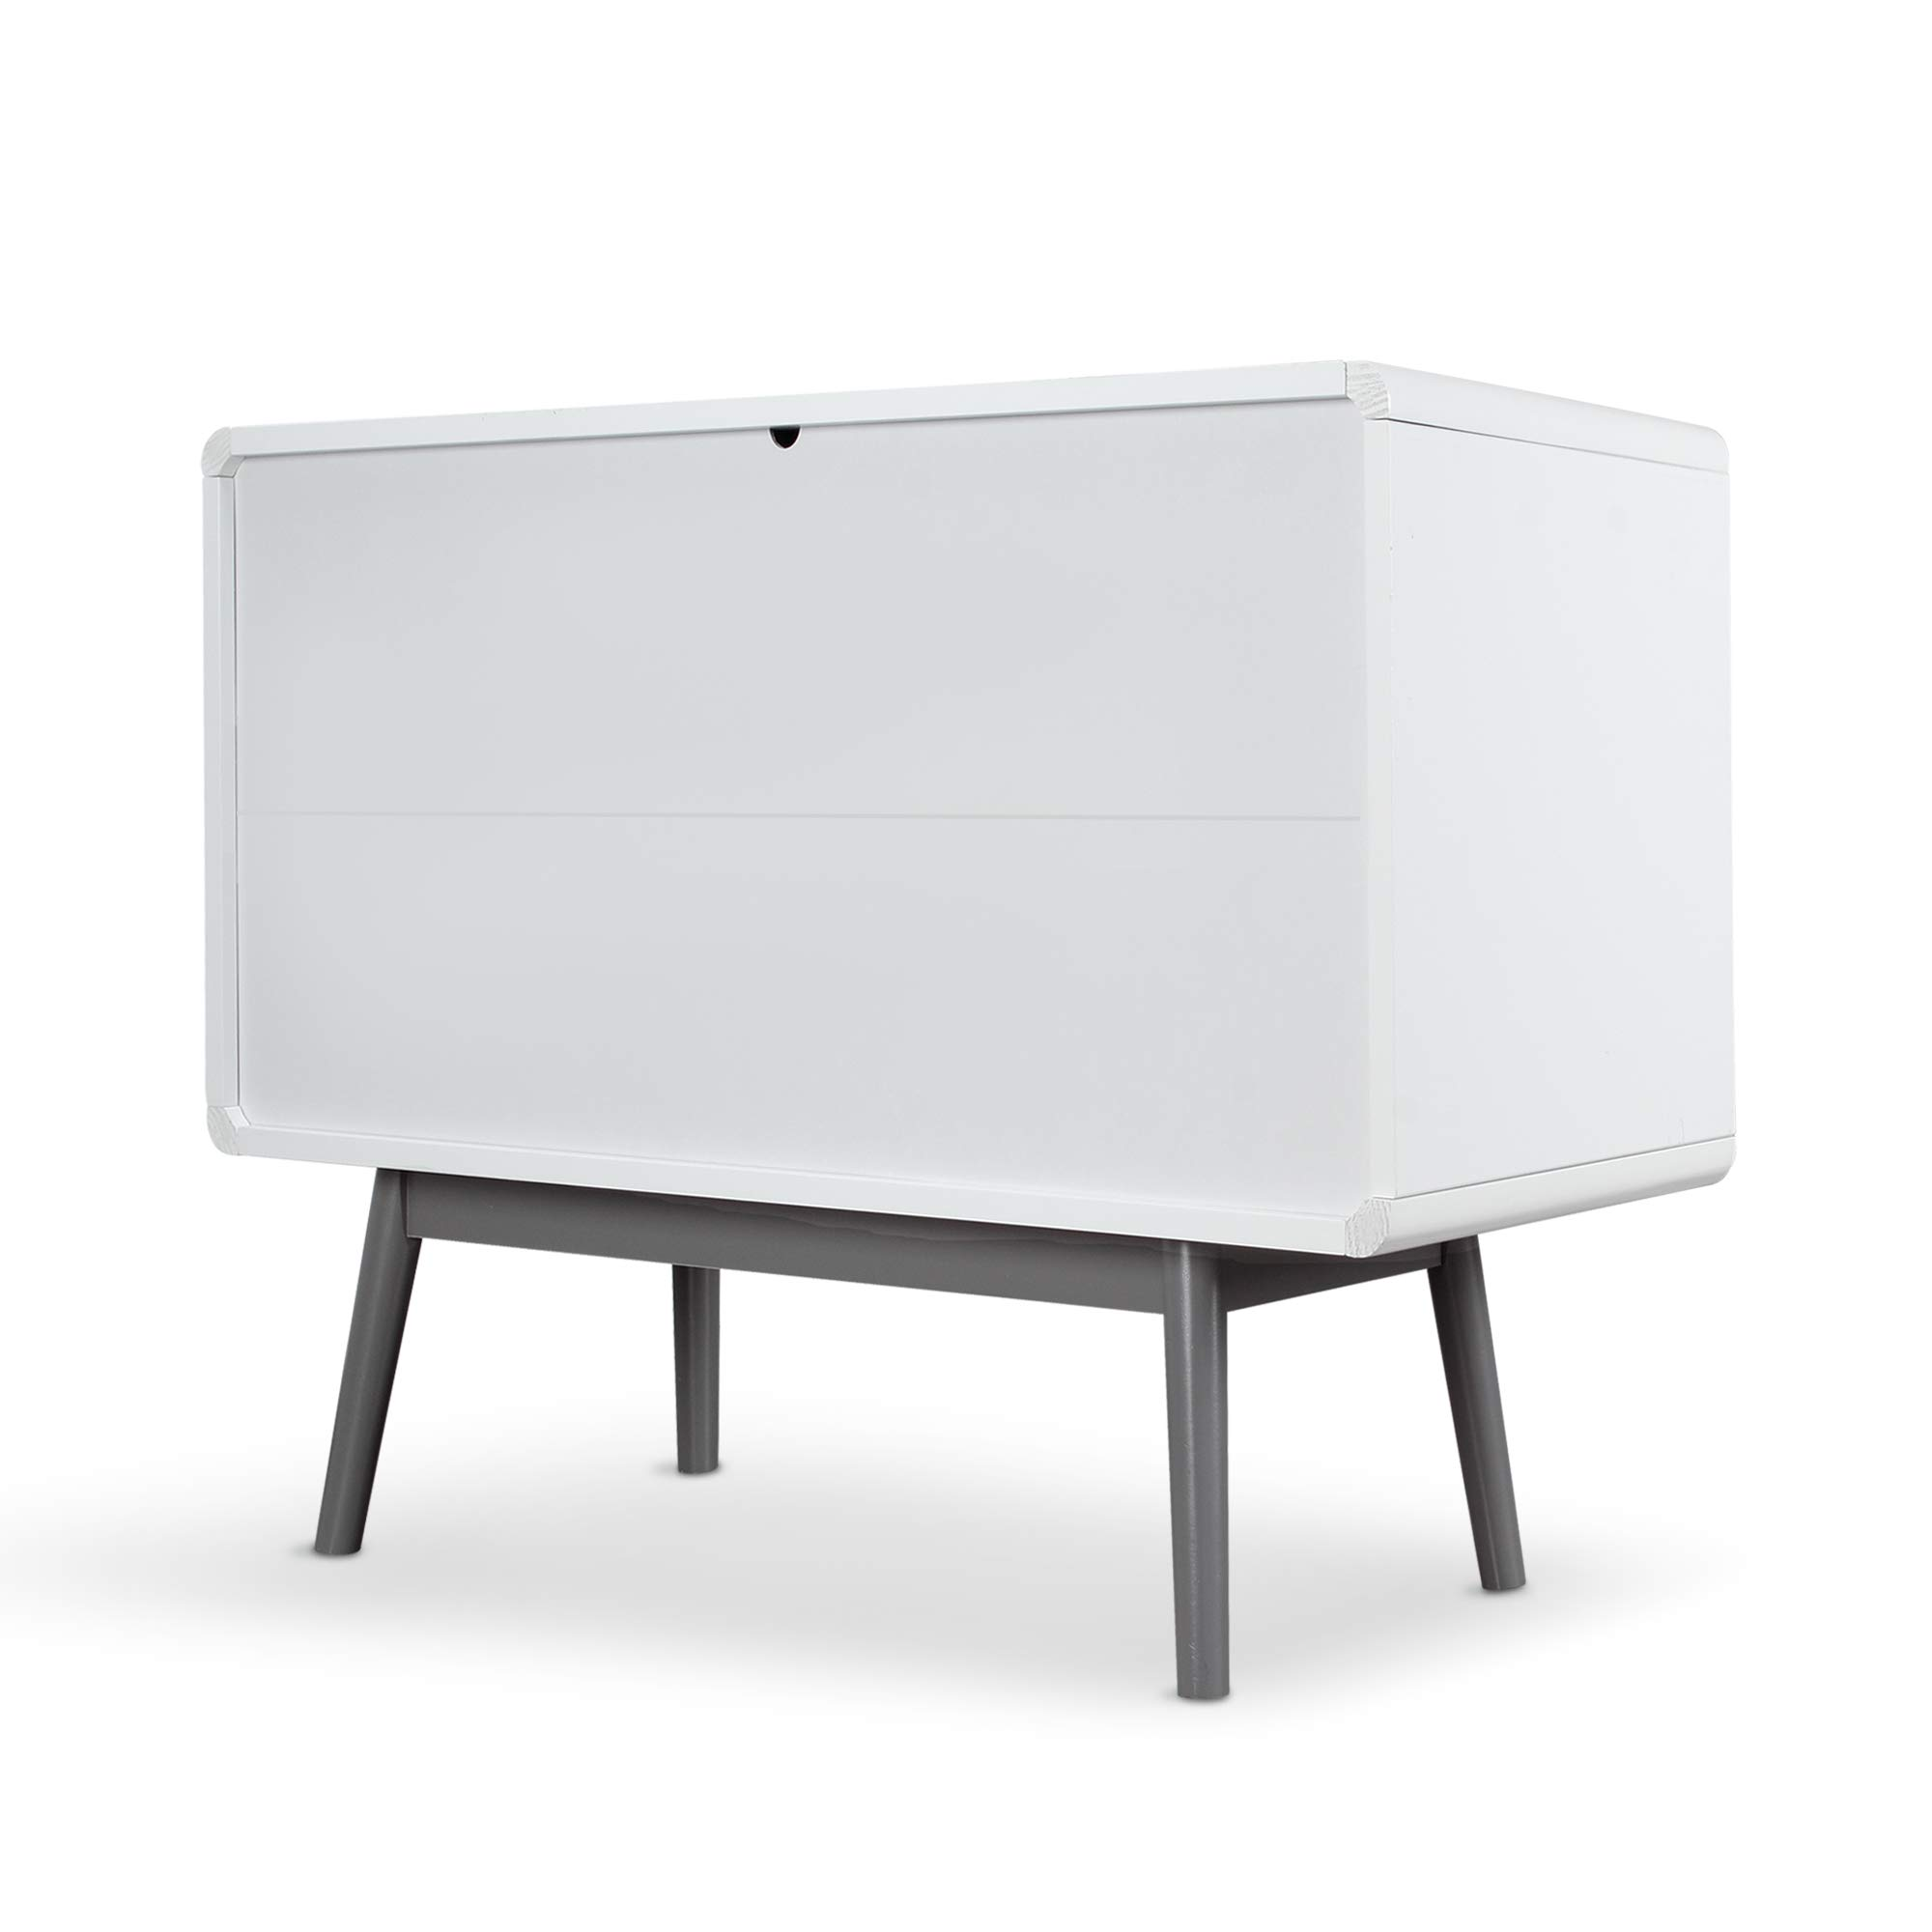 BELLEZE Contemporary Sideboard Buffet Table Cabinet with Wood Storage Console Table 2 Drawers & 1 Cabinet White by Belleze (Image #7)